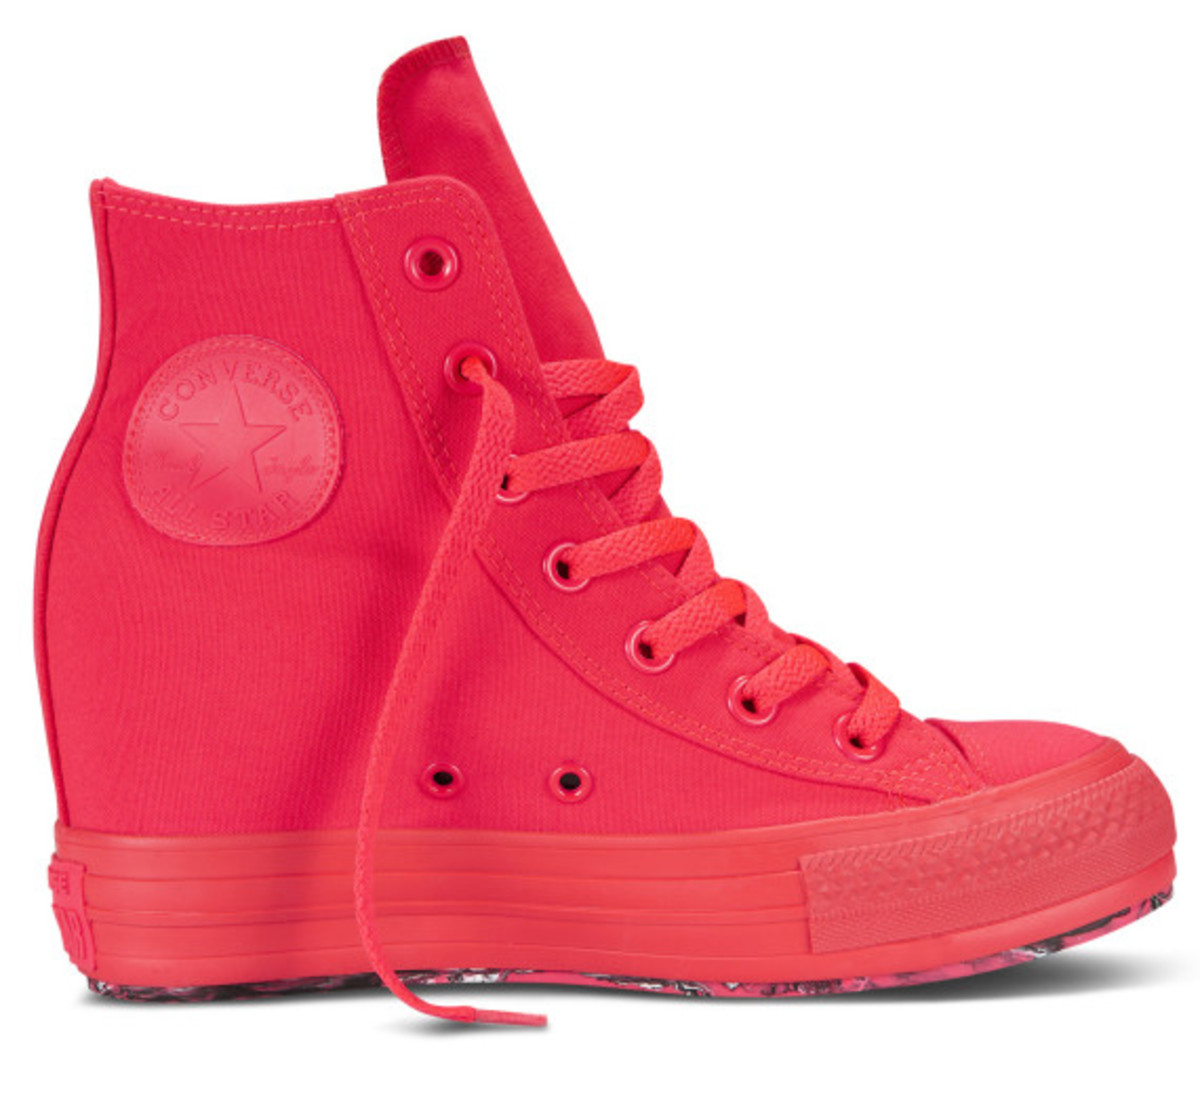 converse-chuck-taylor-all-star-spring-2014-collection-05